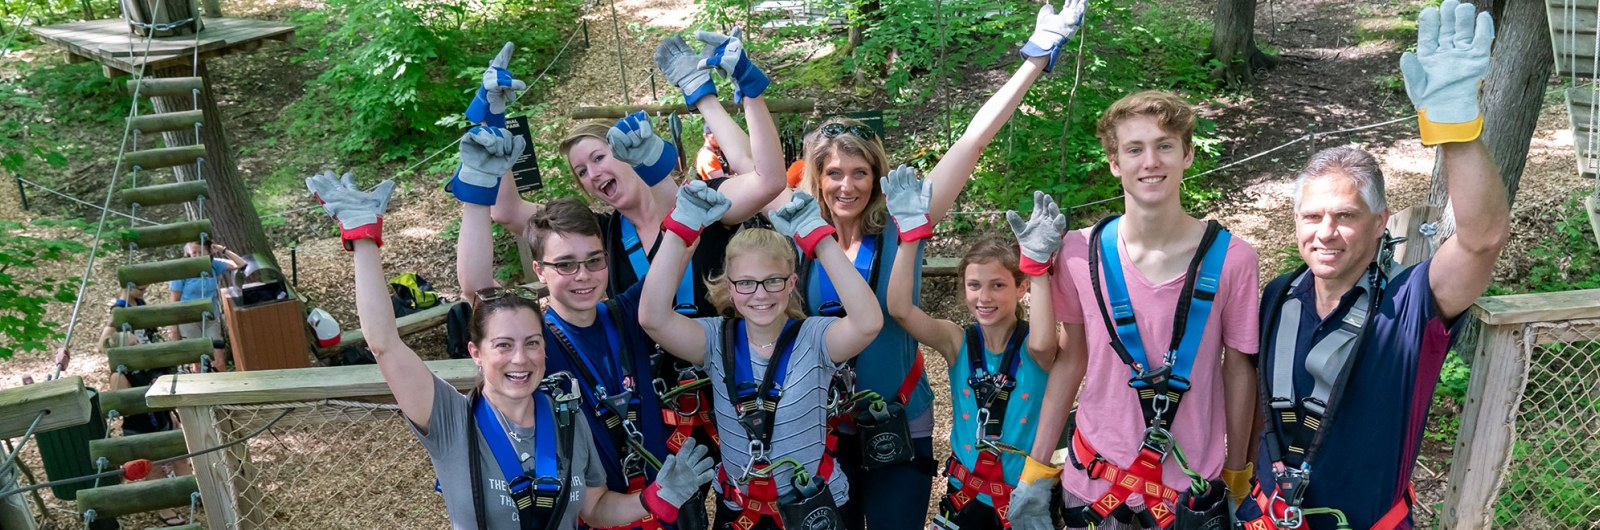 Family group in zip line harnesses at Sky High Adventure park